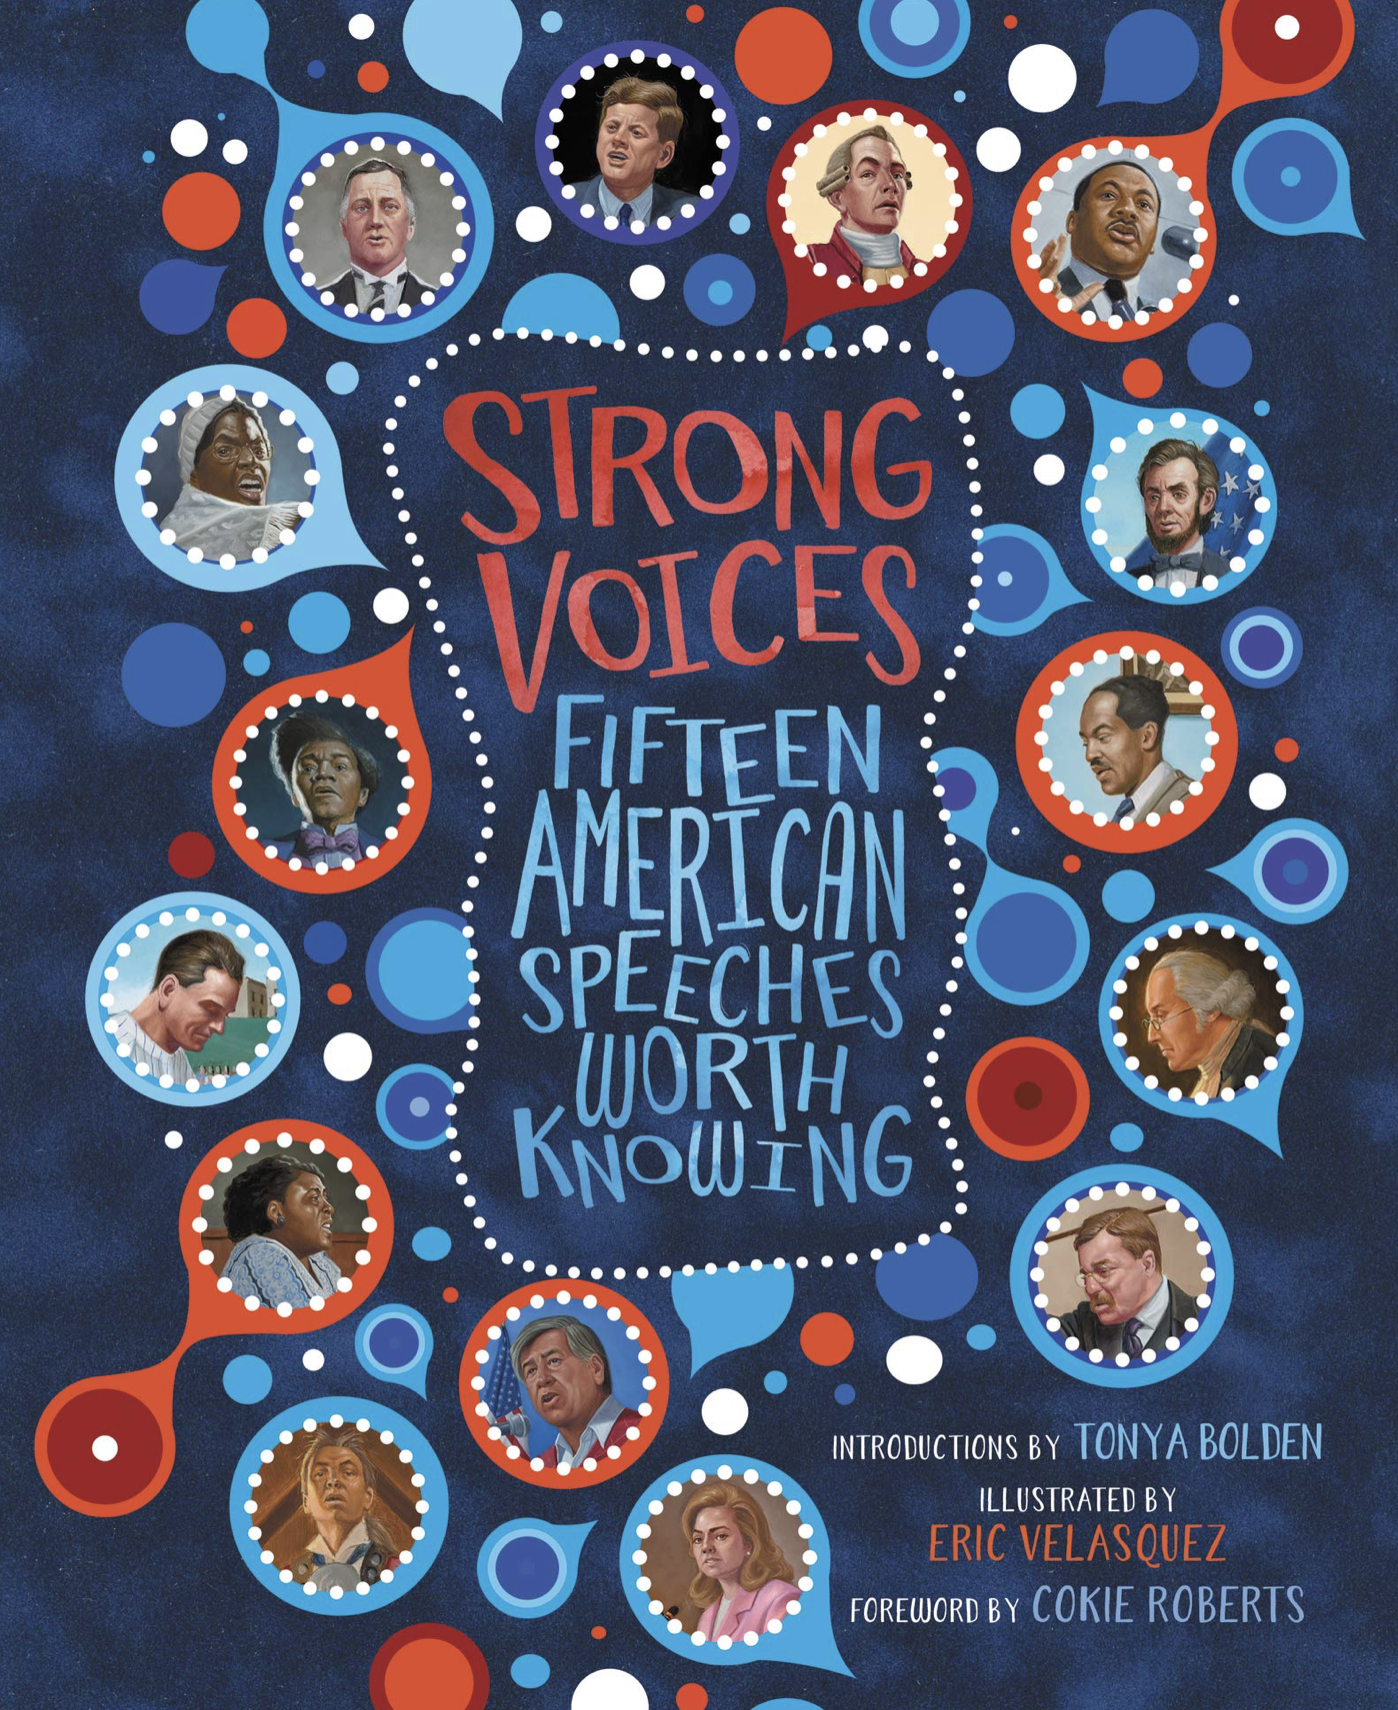 Strong Voices: 15 American Speeches